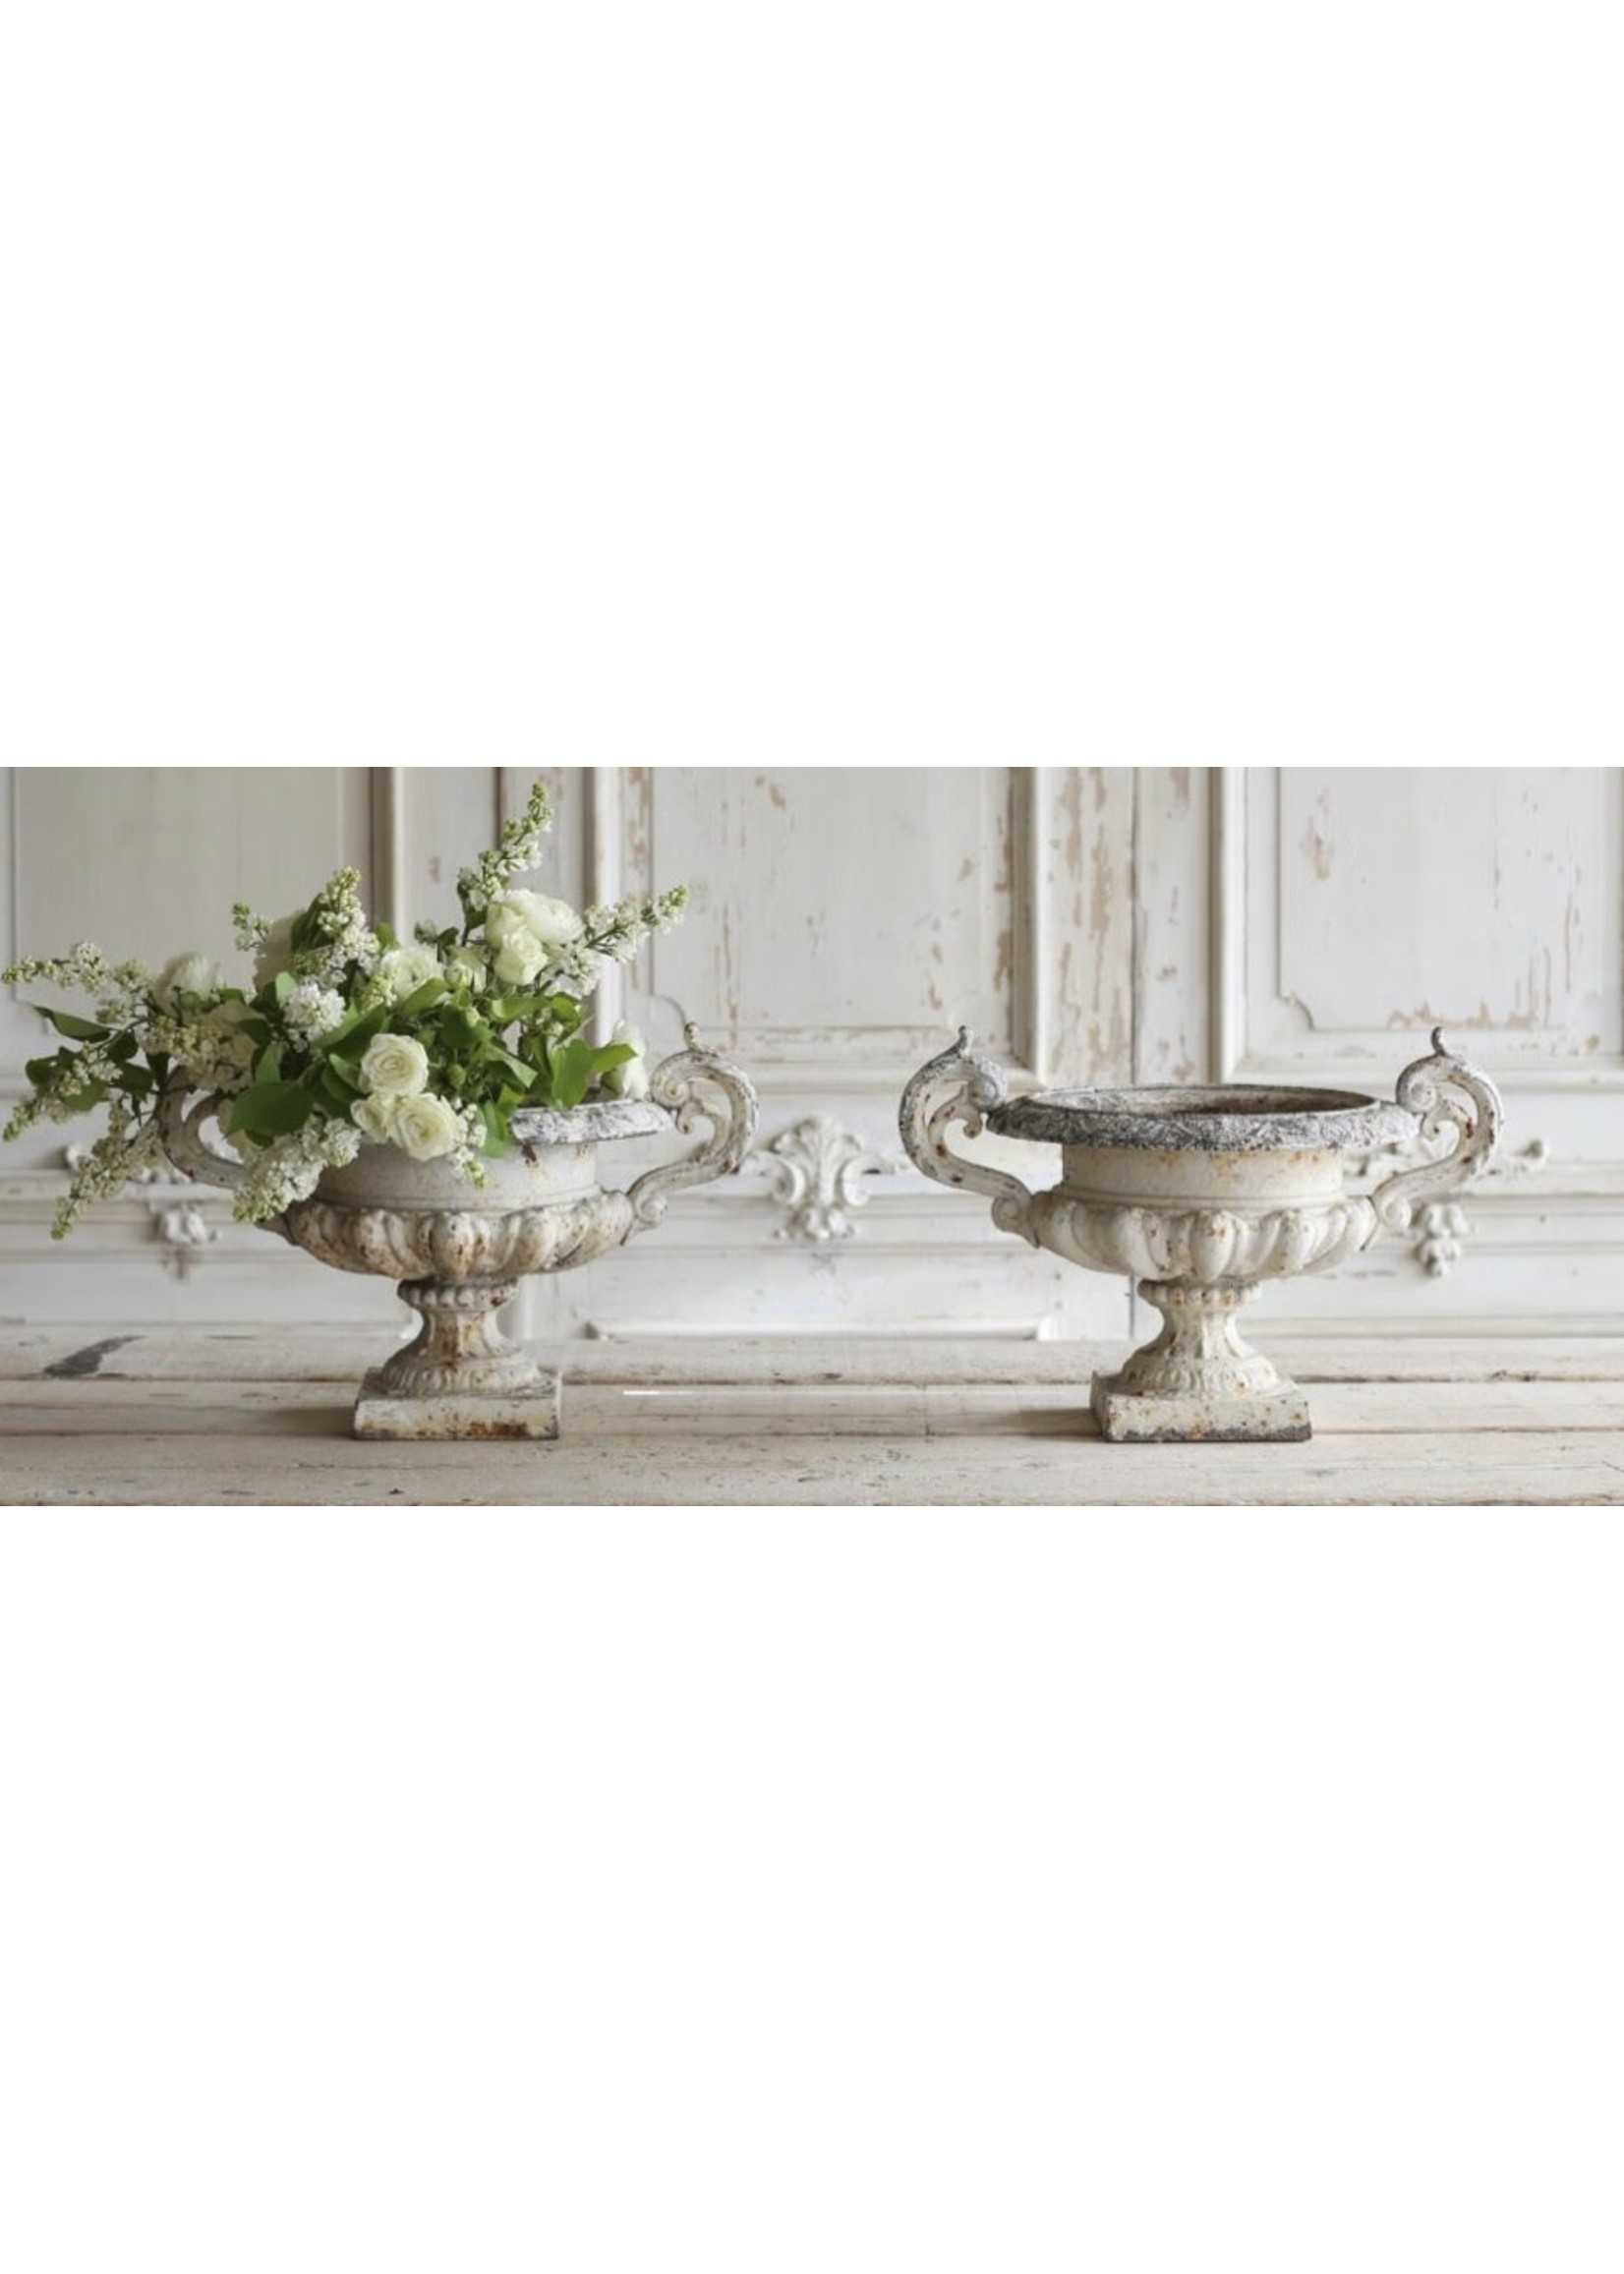 Antique French Cast Iron Urns